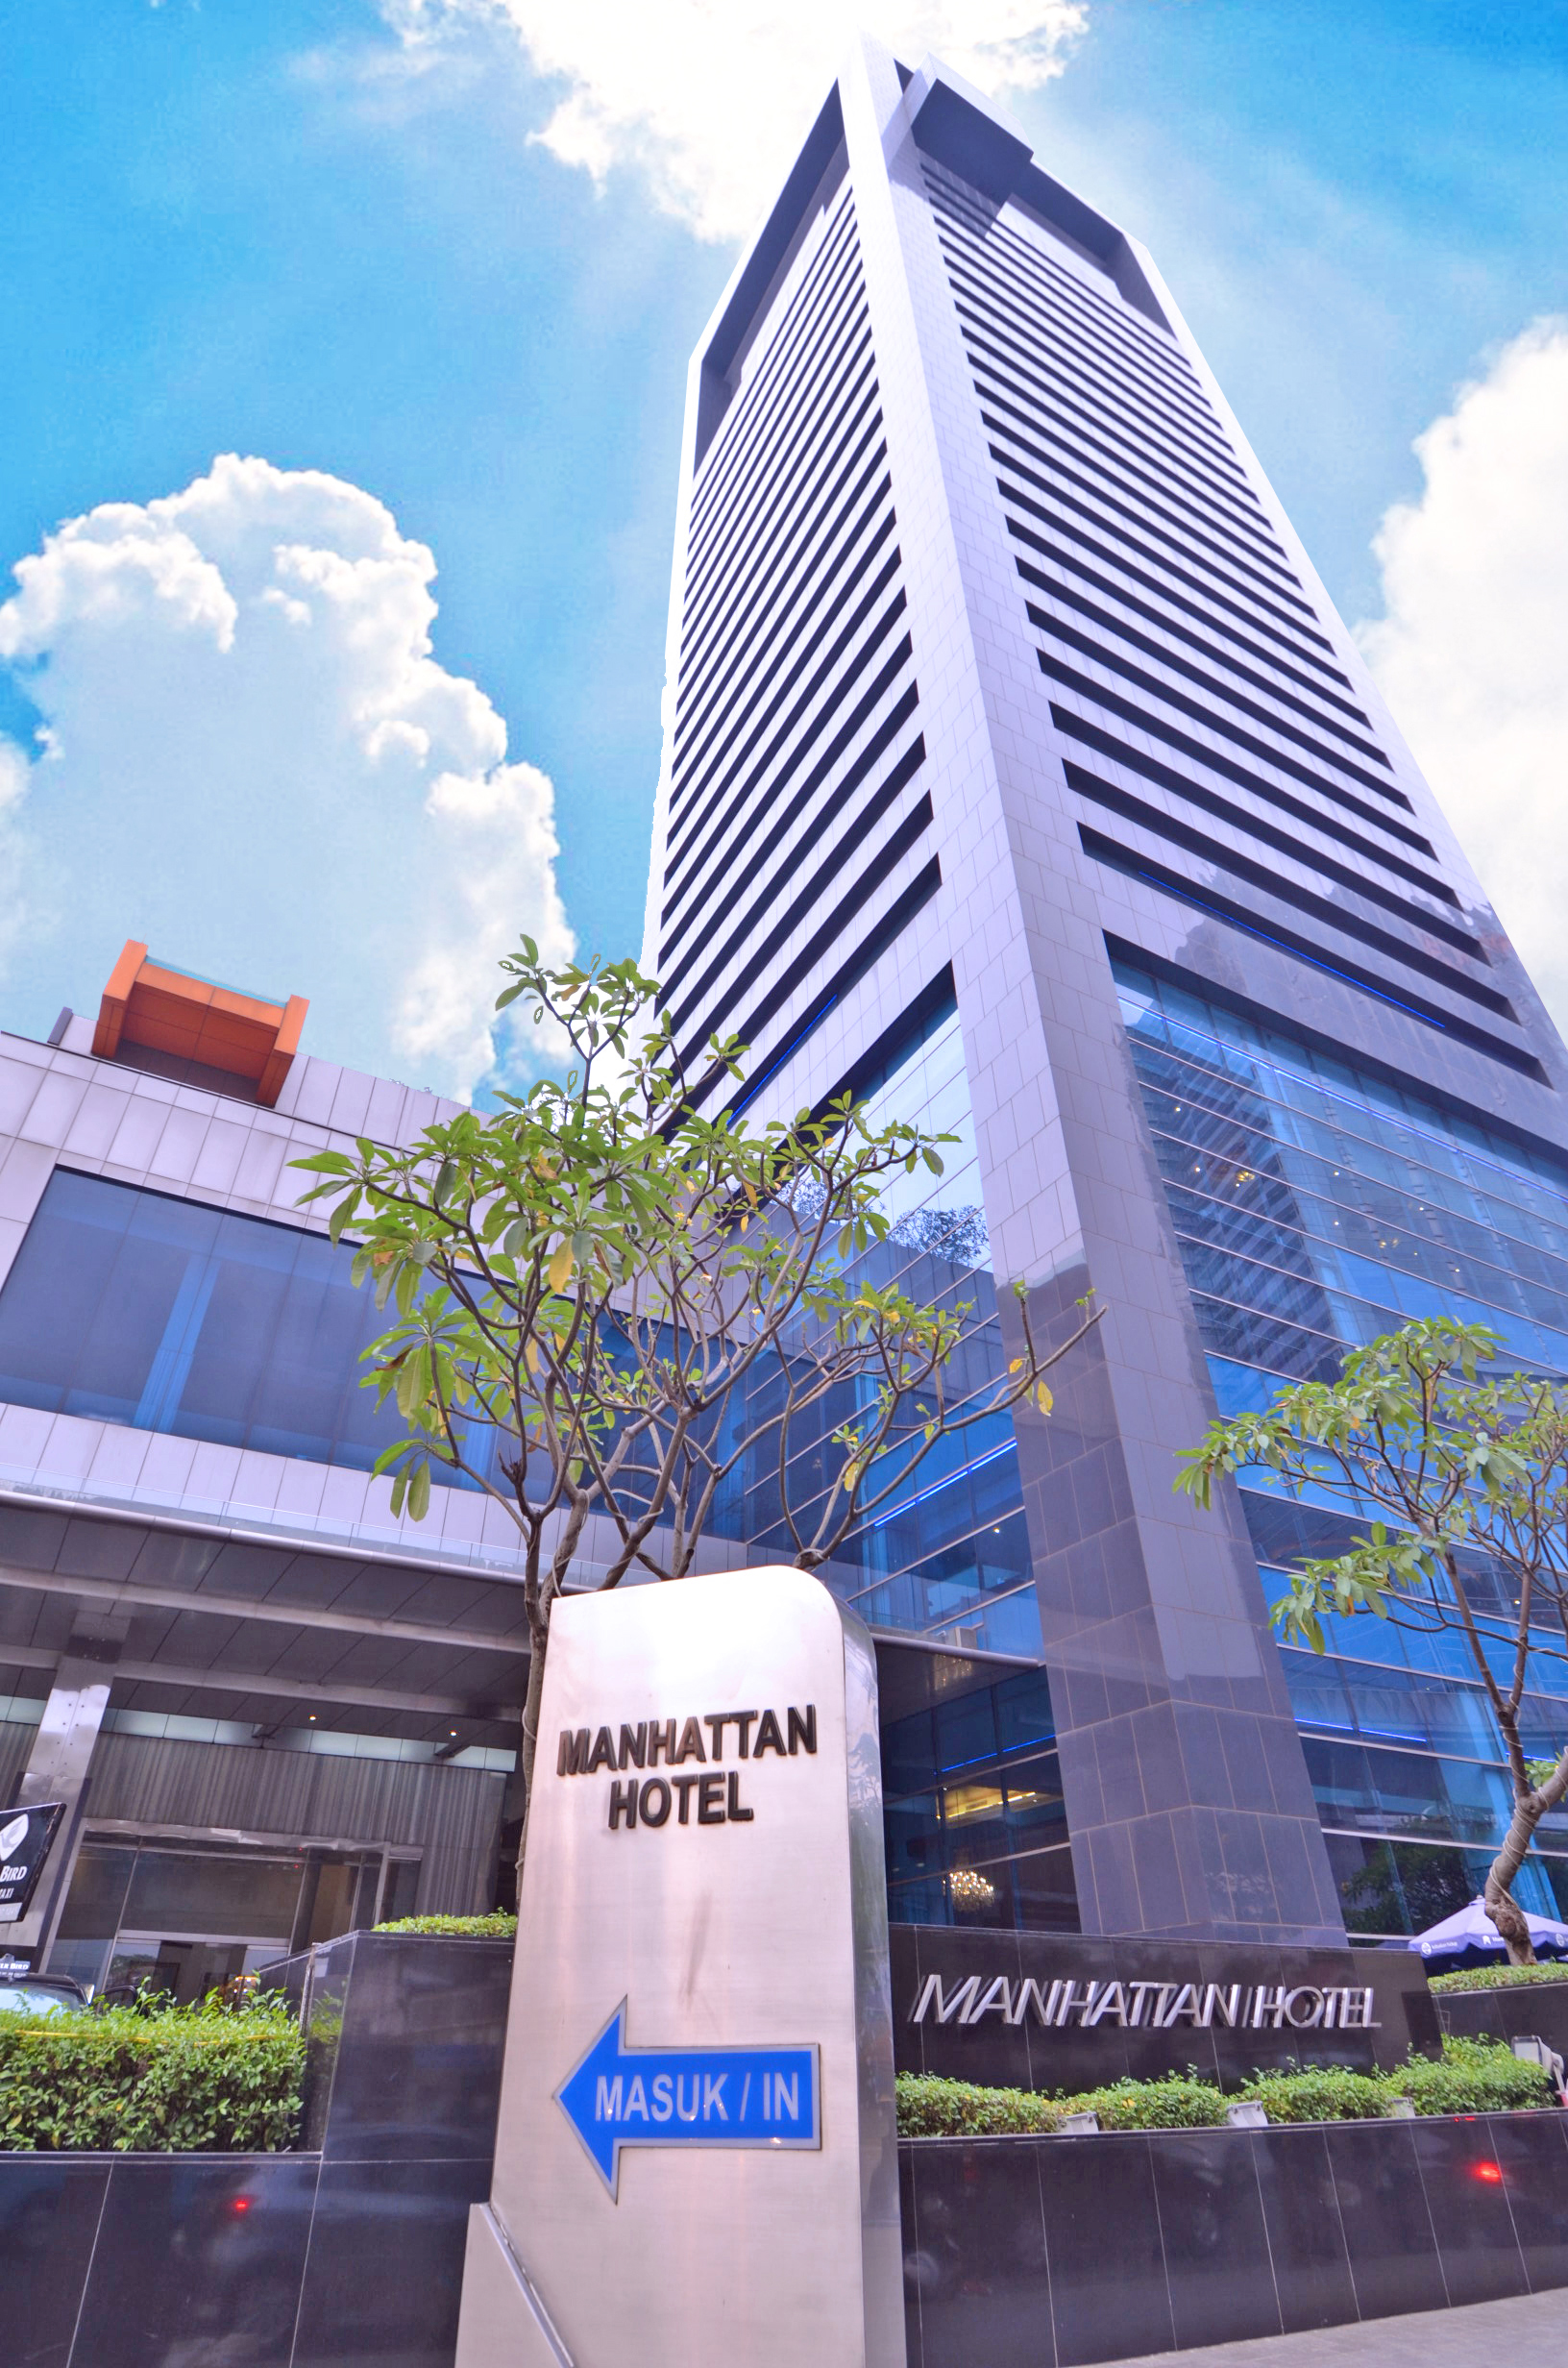 Manhattan Hotel Wedding Venue In Jakarta Bridestory Com